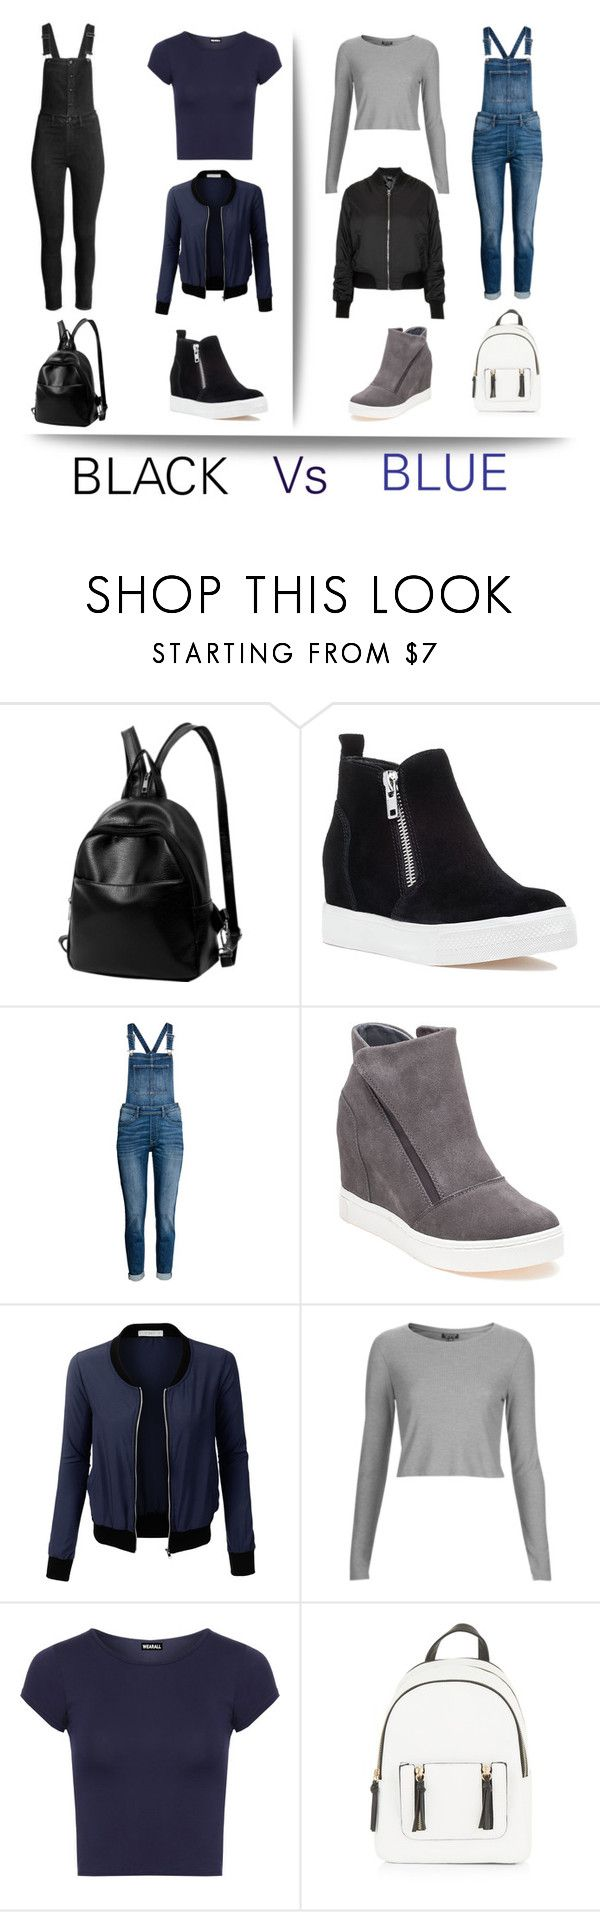 """Black Dungarees Vs Blue Dungarees? Which Is Better?"" by alishajannat ❤ liked on Polyvore featuring Steve Madden, LE3NO, Topshop, WearAll and New Look"